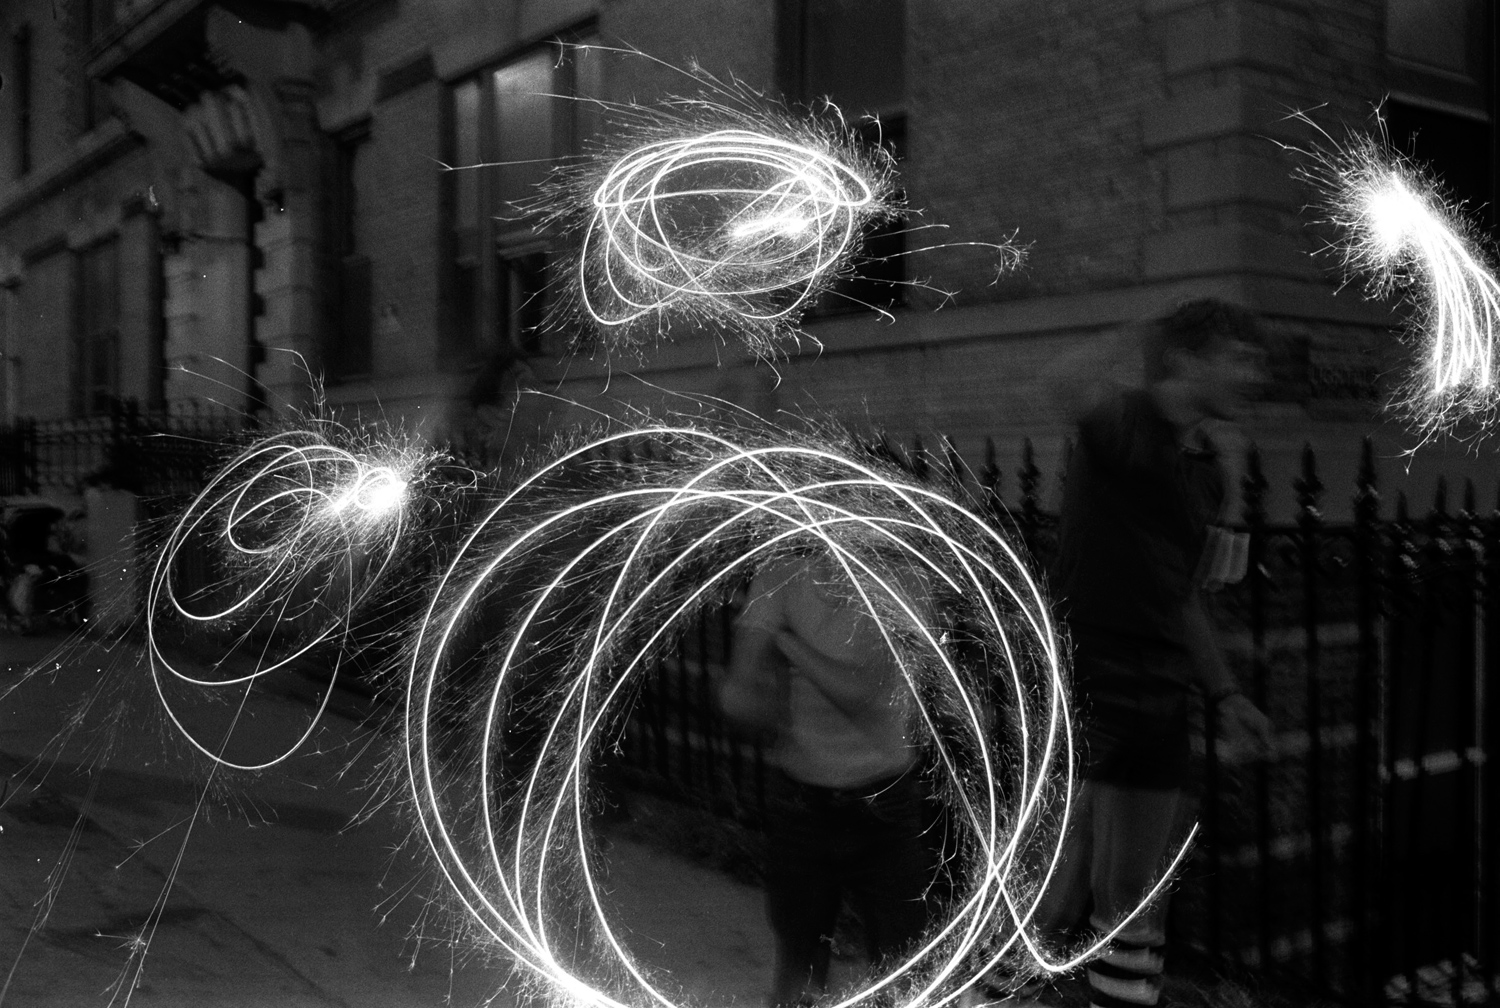 Sparklers, from Bronx Boys (FotoEvidence, 2011) by Stephen Shames.